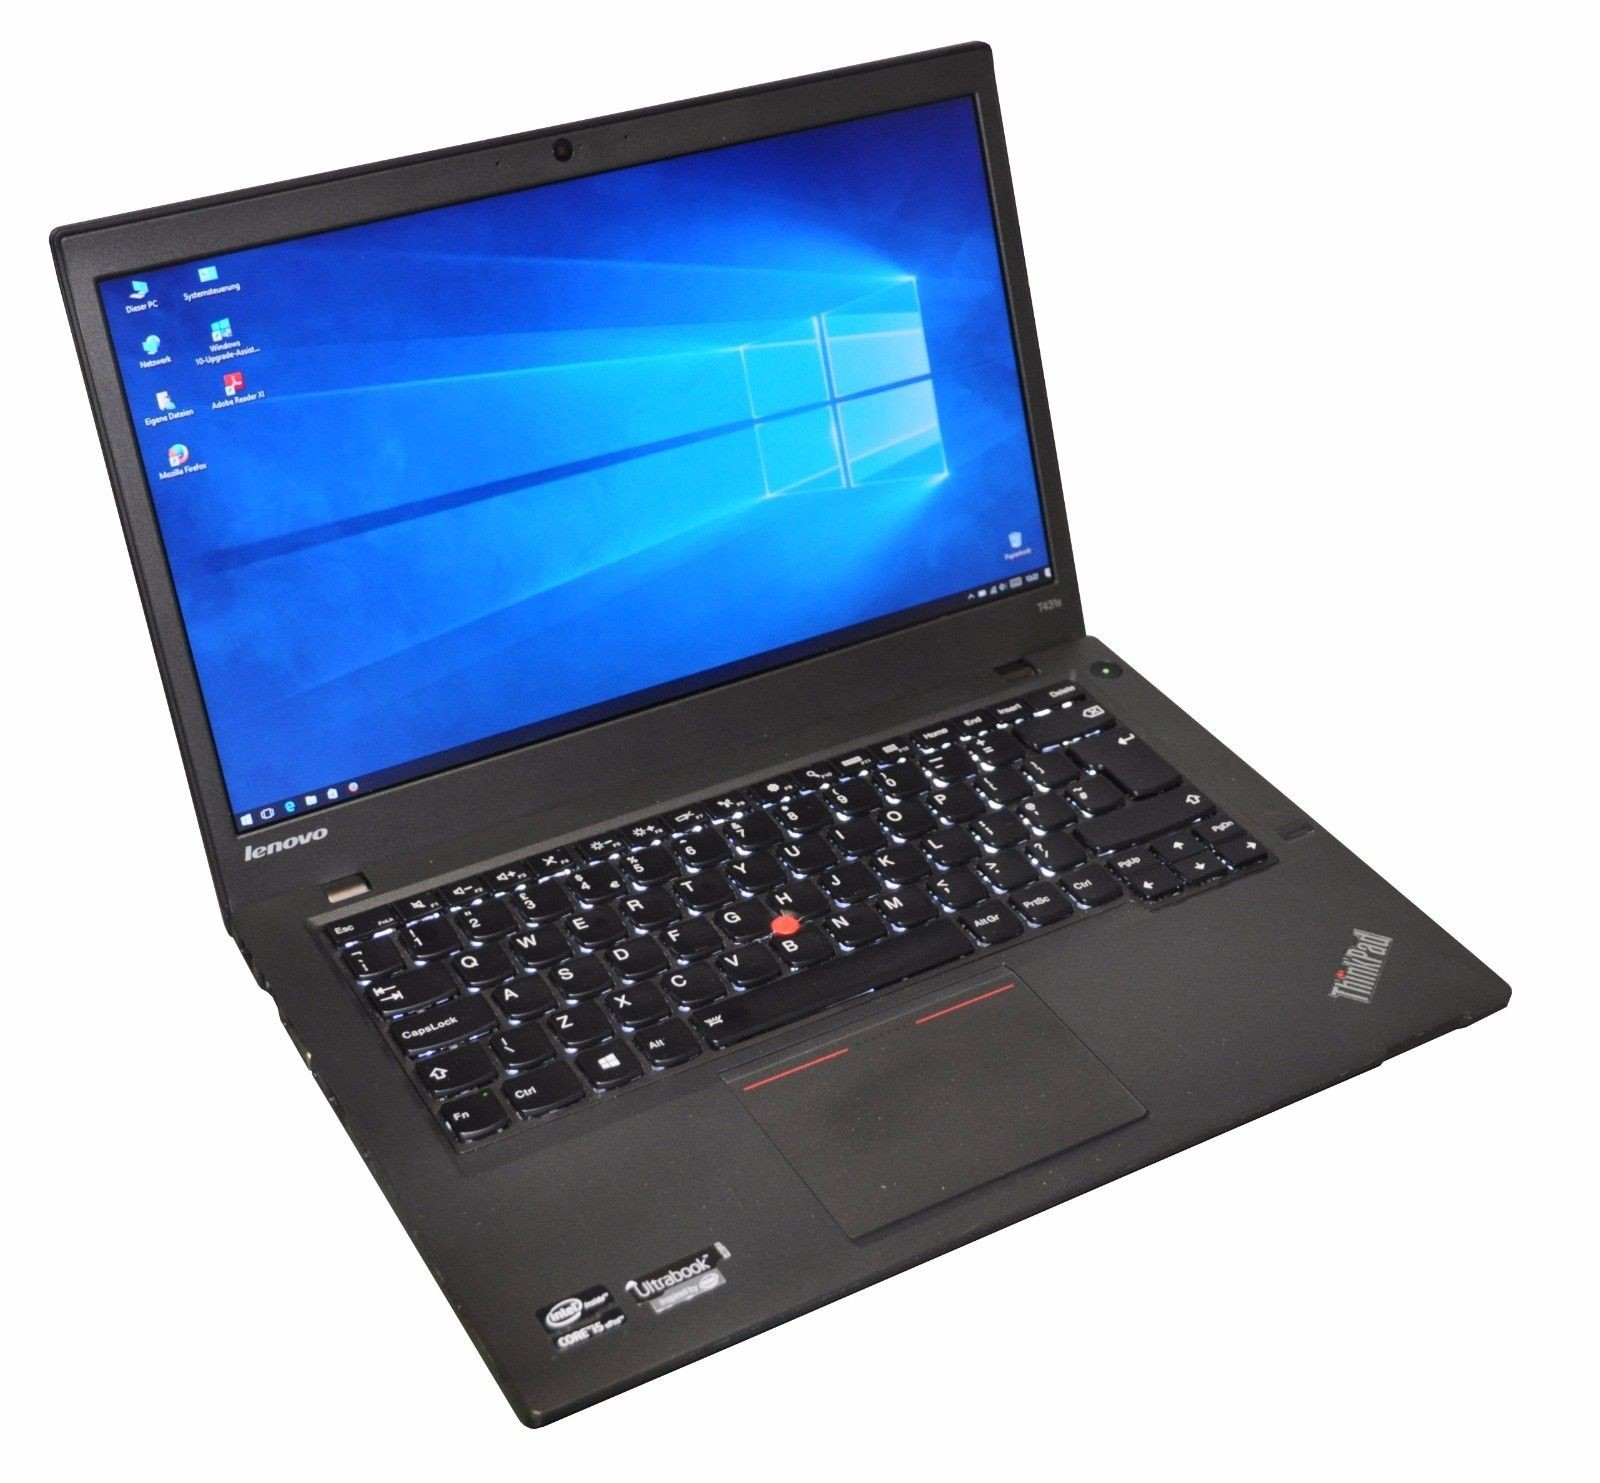 Lenovo ThinkPad T431s i5 3437U 8GB 180GB SSD 1600x900 HD+ Win 10 Tast. Bel.